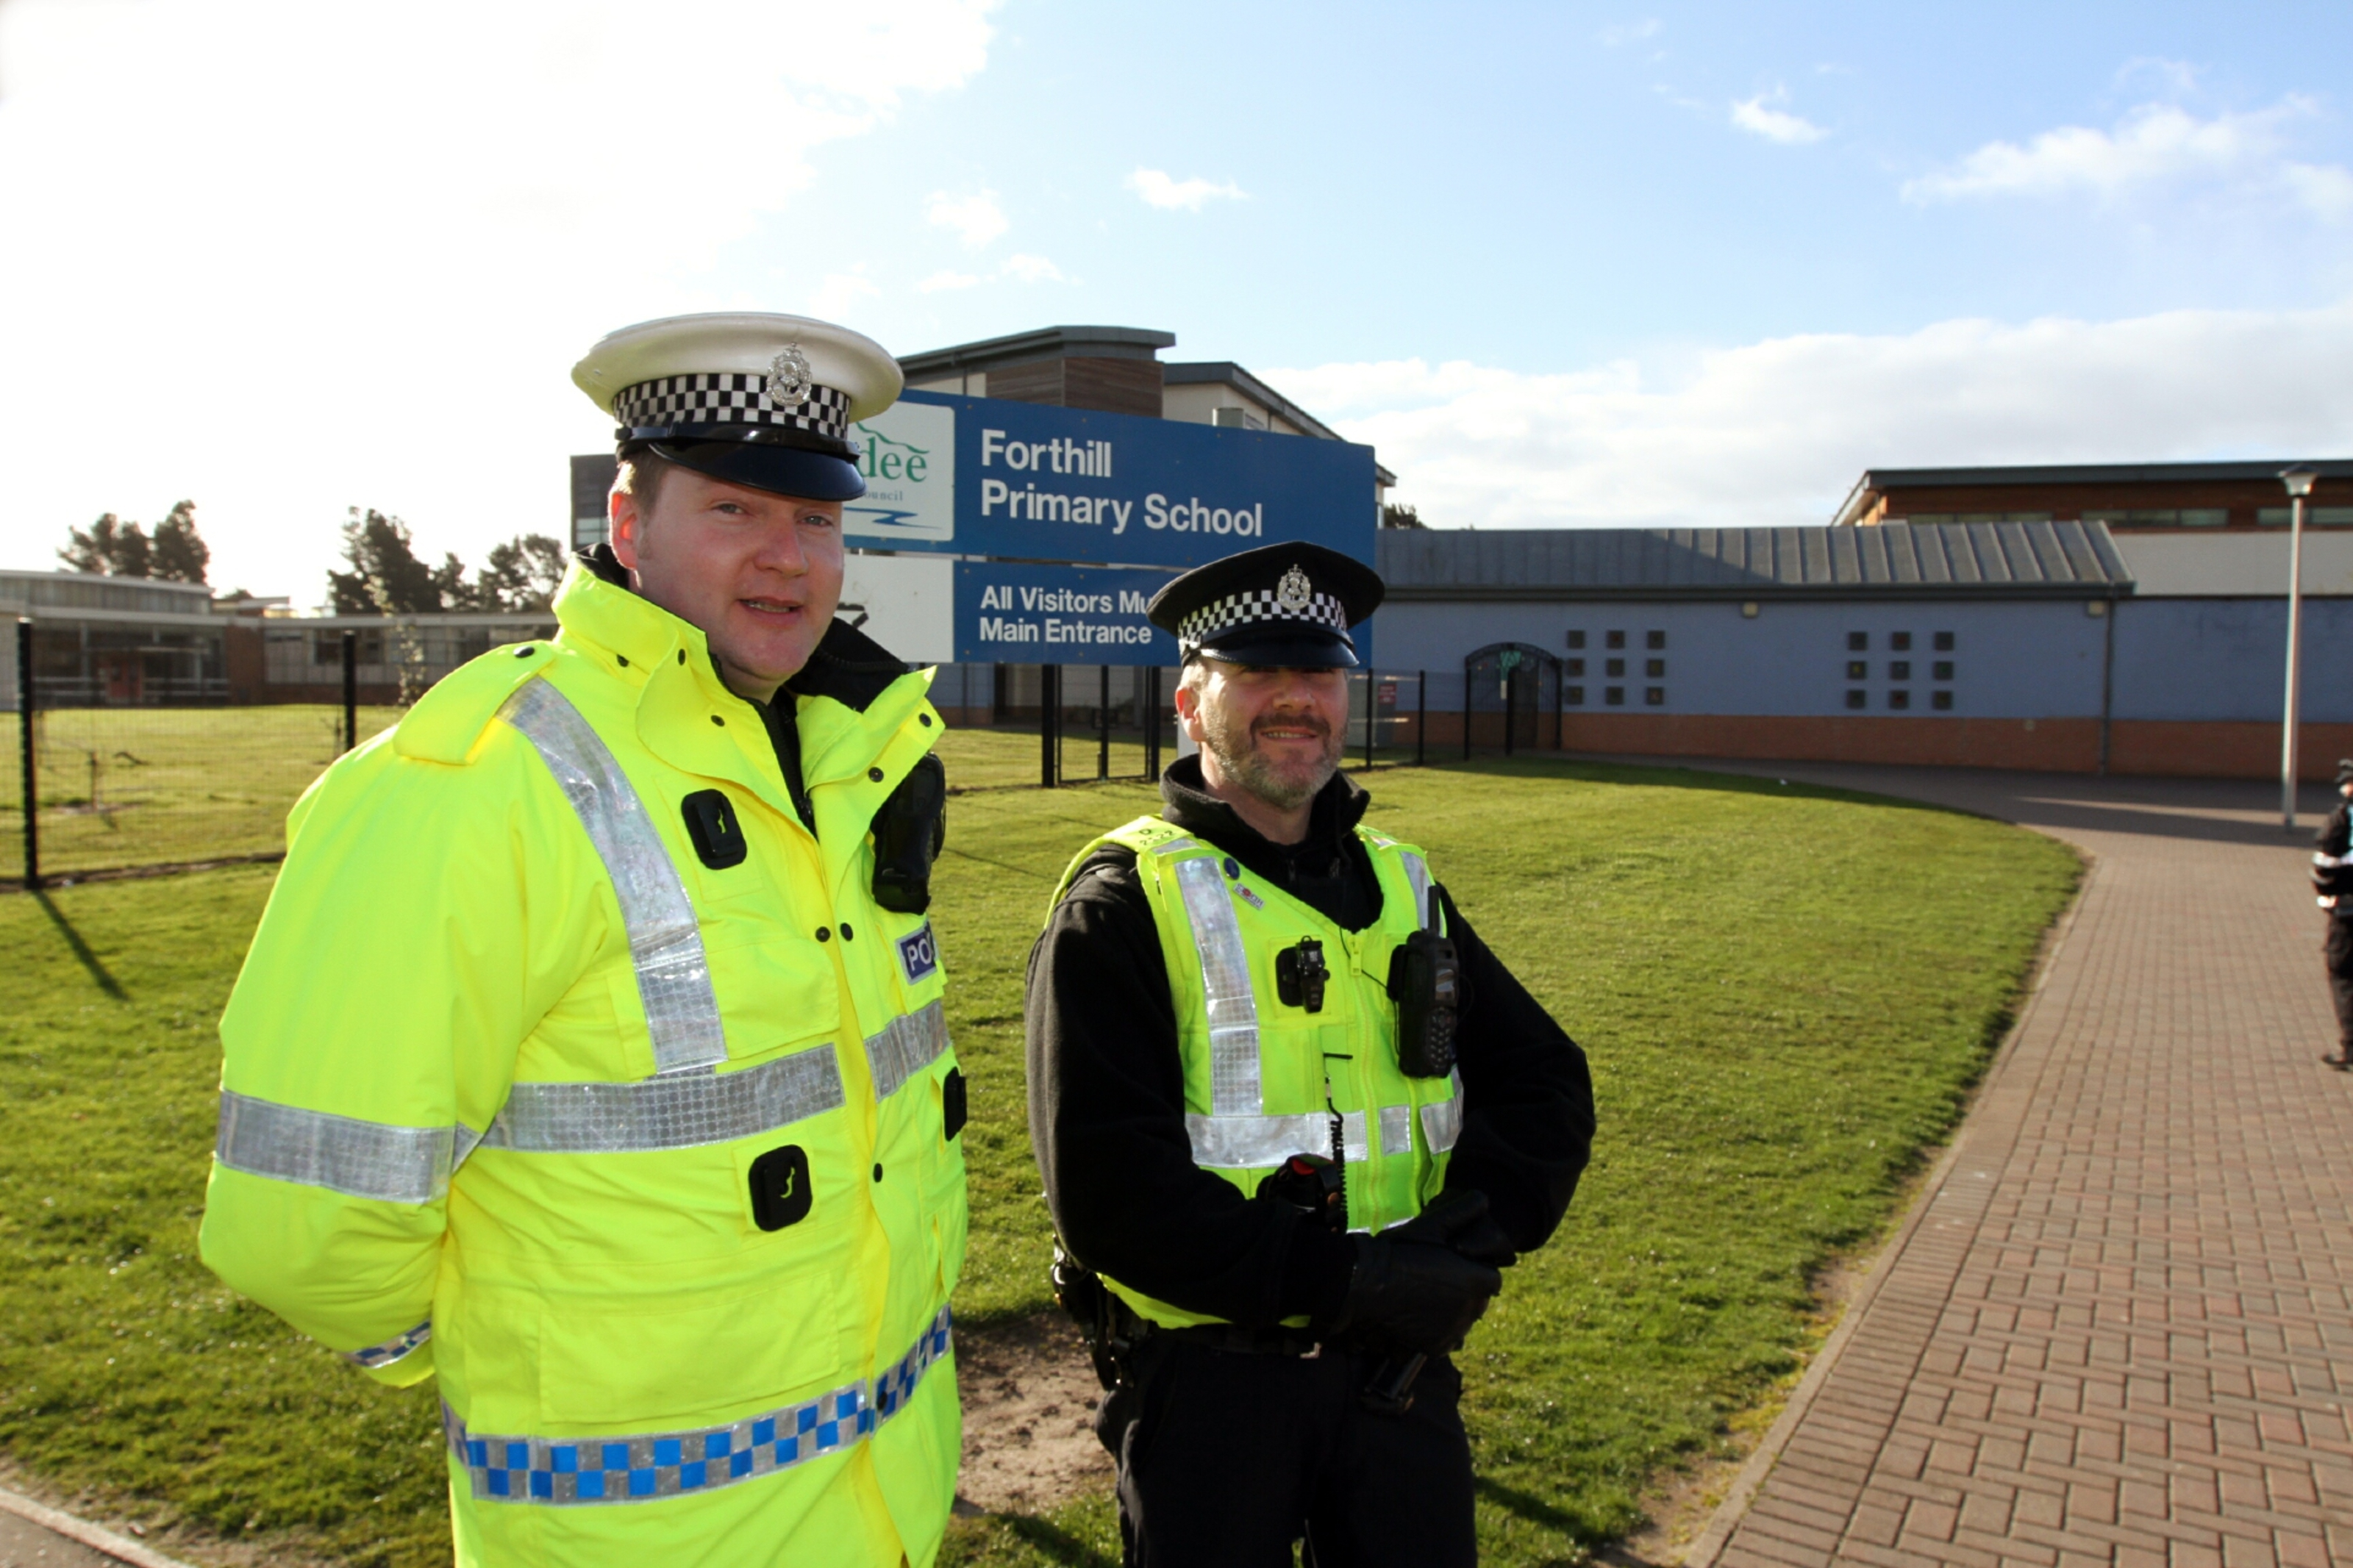 PC Gordon Dickson, of the road policing unit, with PC Darren Banister outside Forthill Primary School in Broughty Ferry.